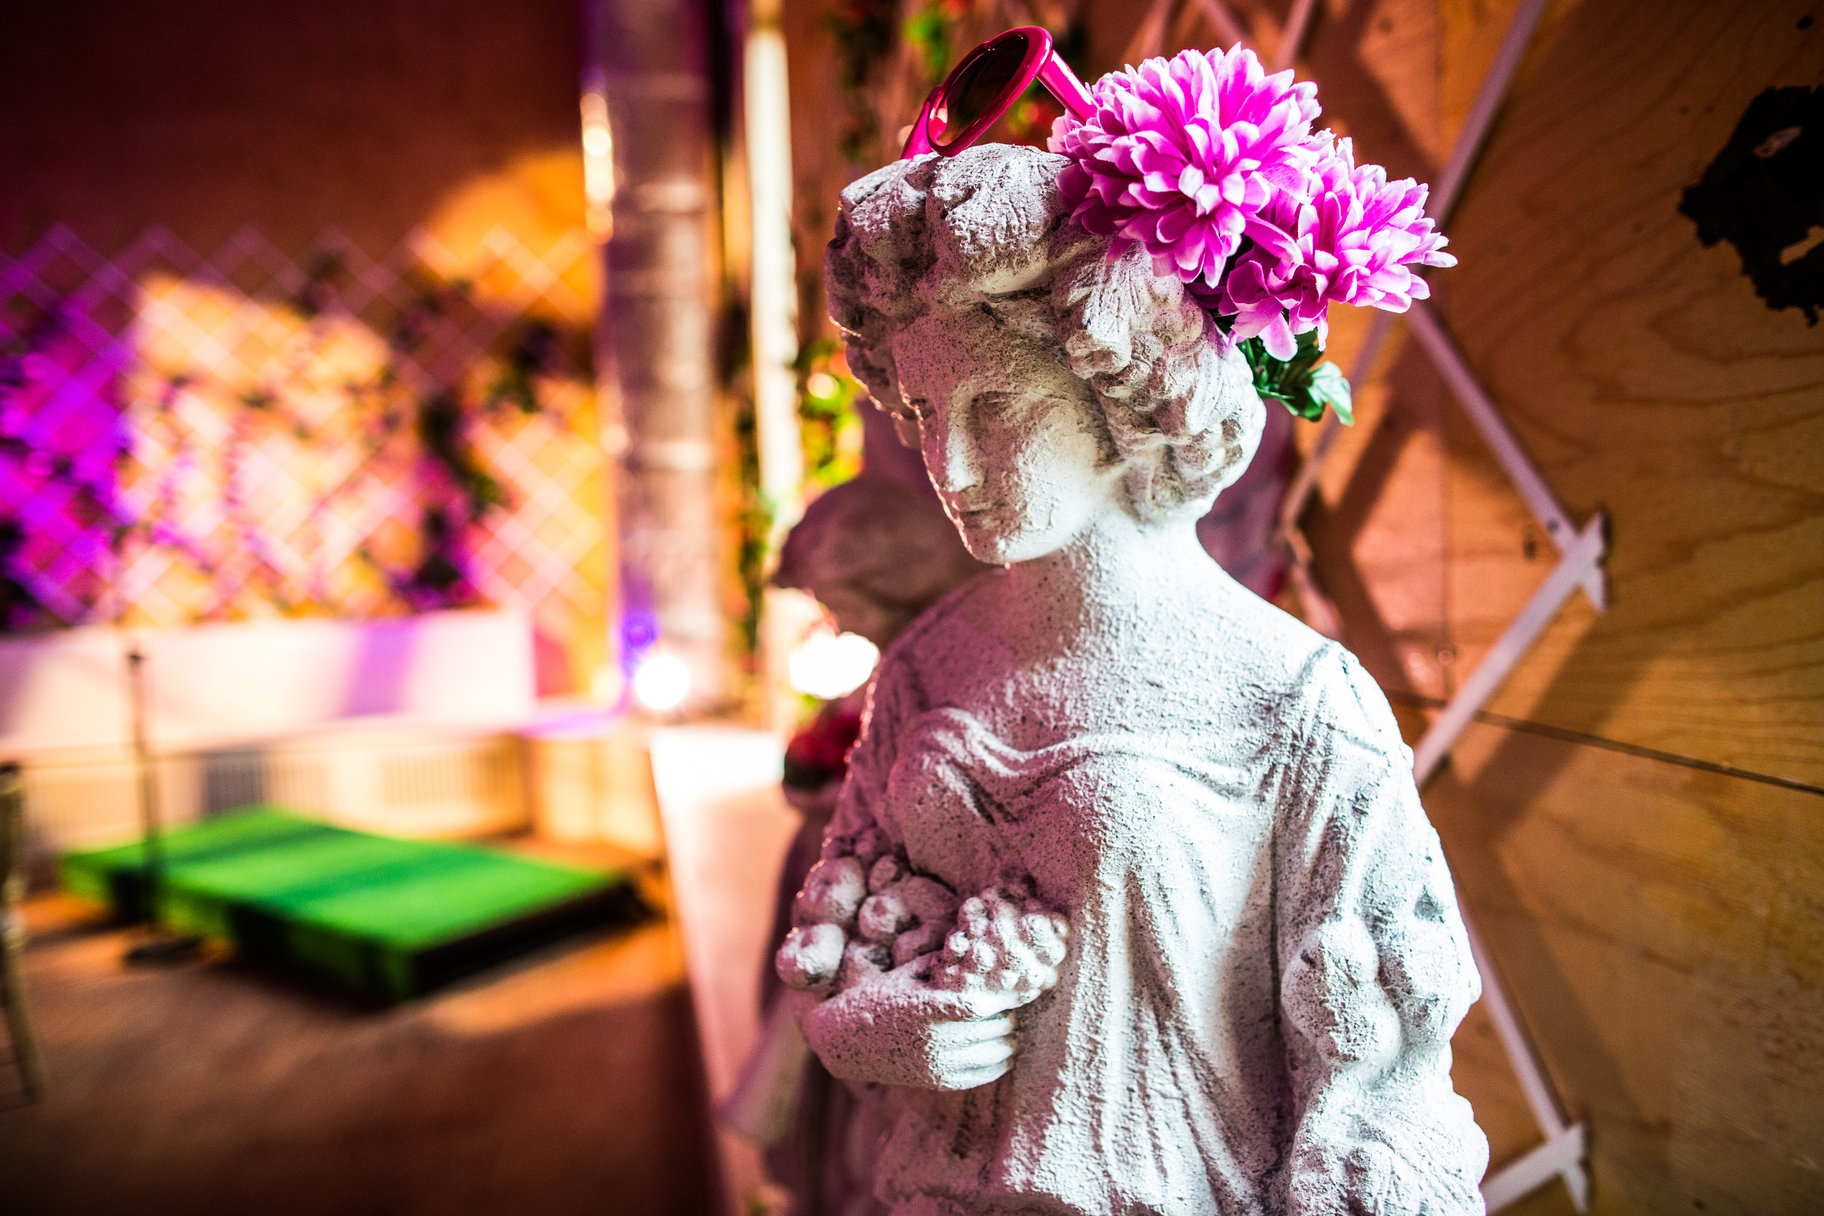 A stone statue in the middle of the room with pink flowers and sunglasses on her head.